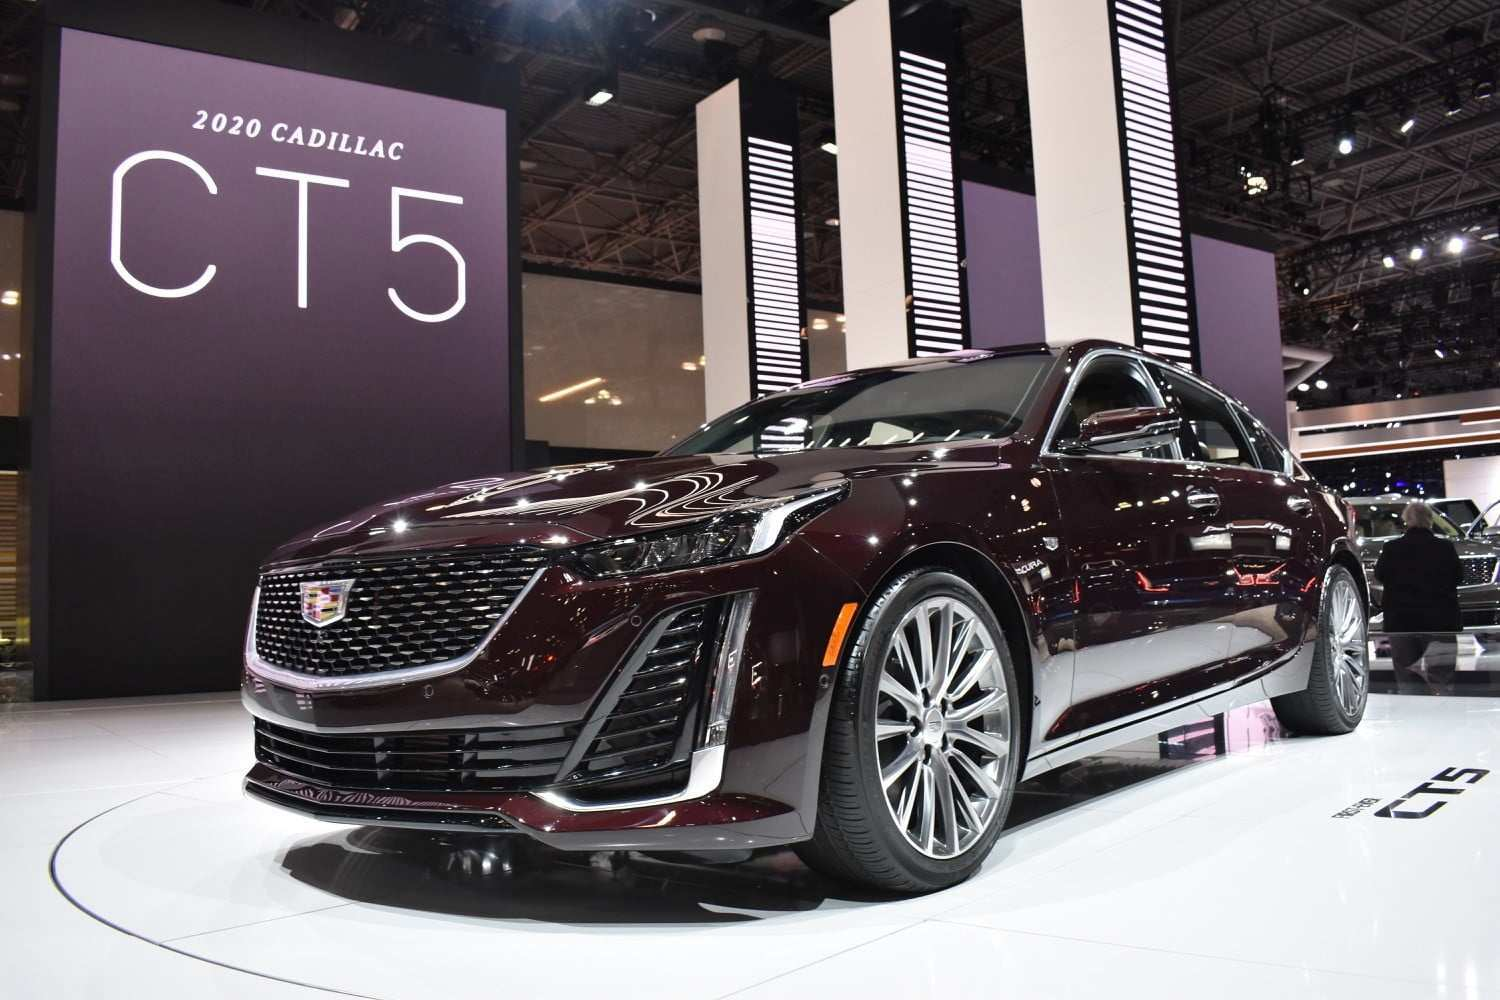 22 All New 2020 Cadillac Cars Price And Review